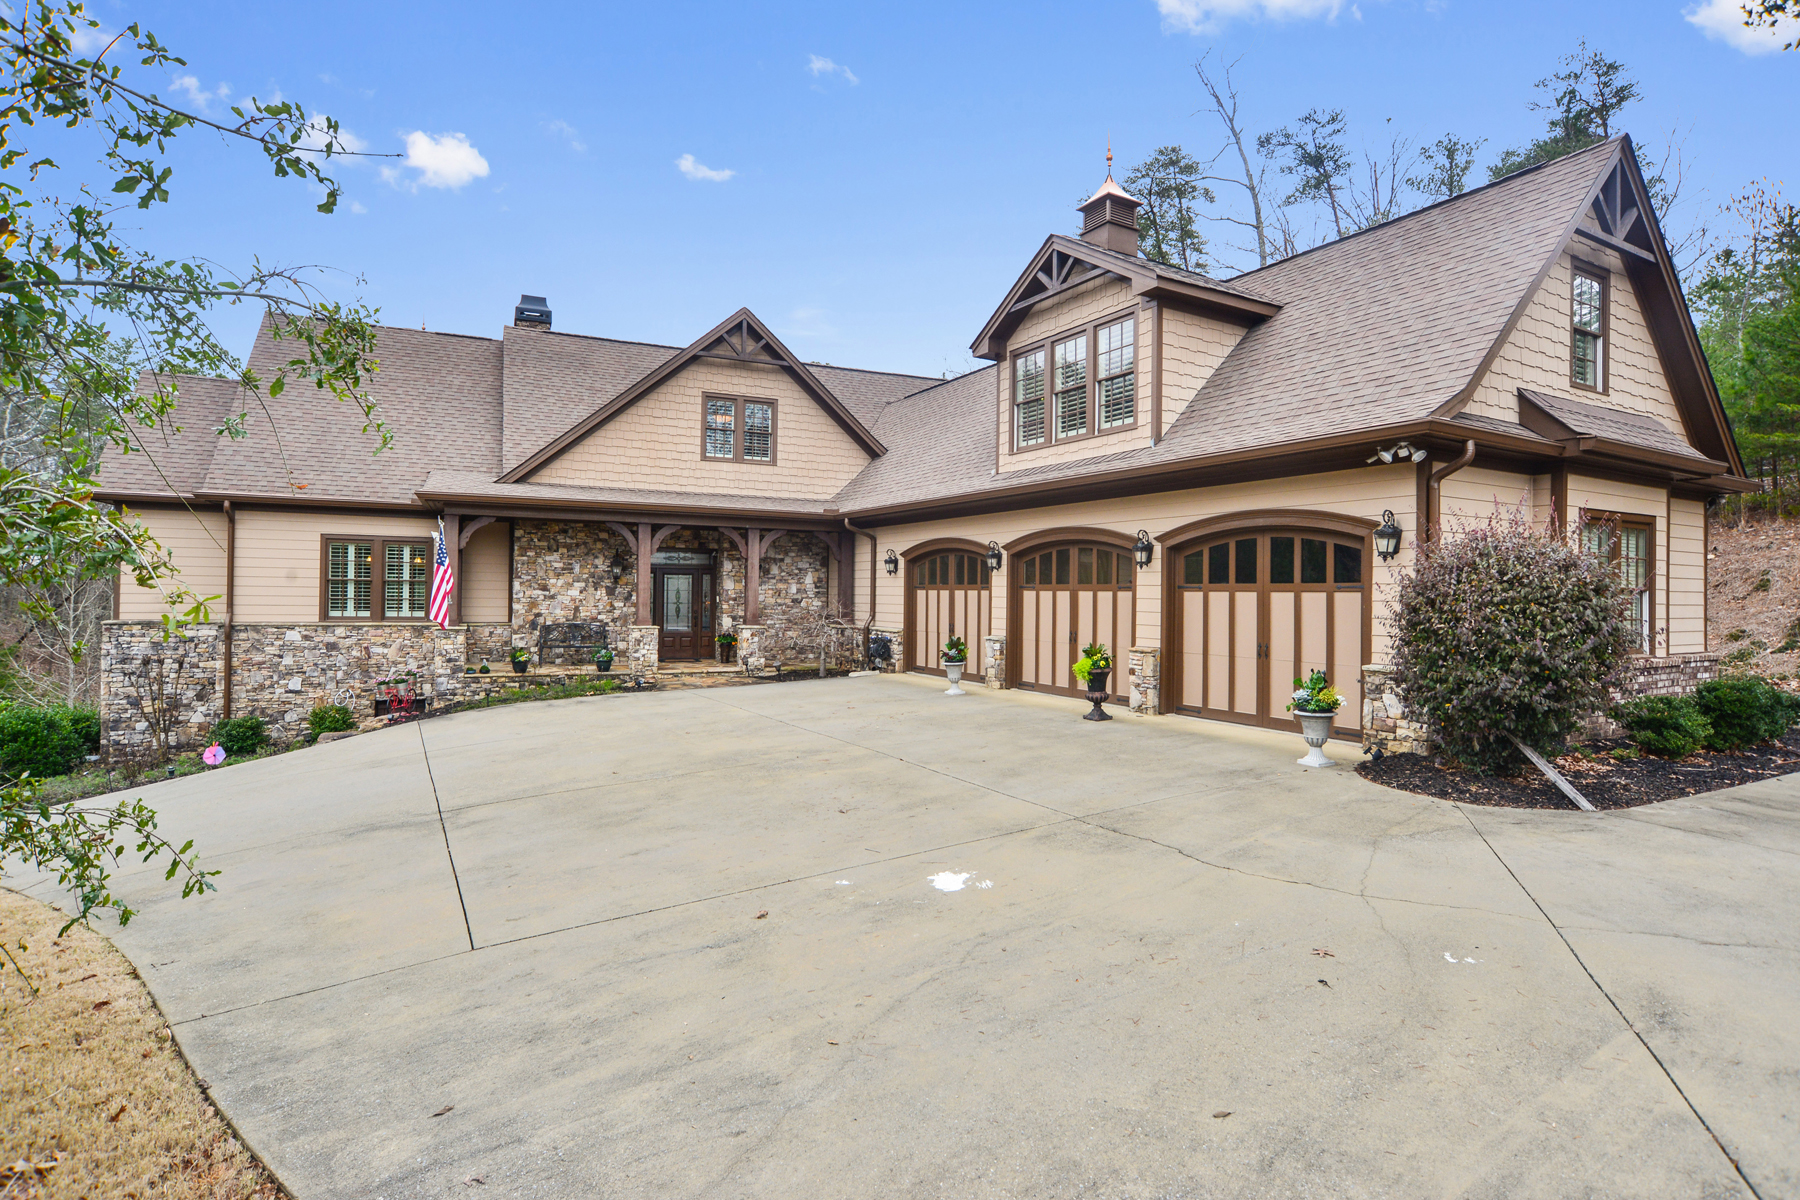 Single Family Home for Sale at Unparalleled Mountaintop Retreat Home 56 Somerset Ln Cartersville, Georgia 30121 United States